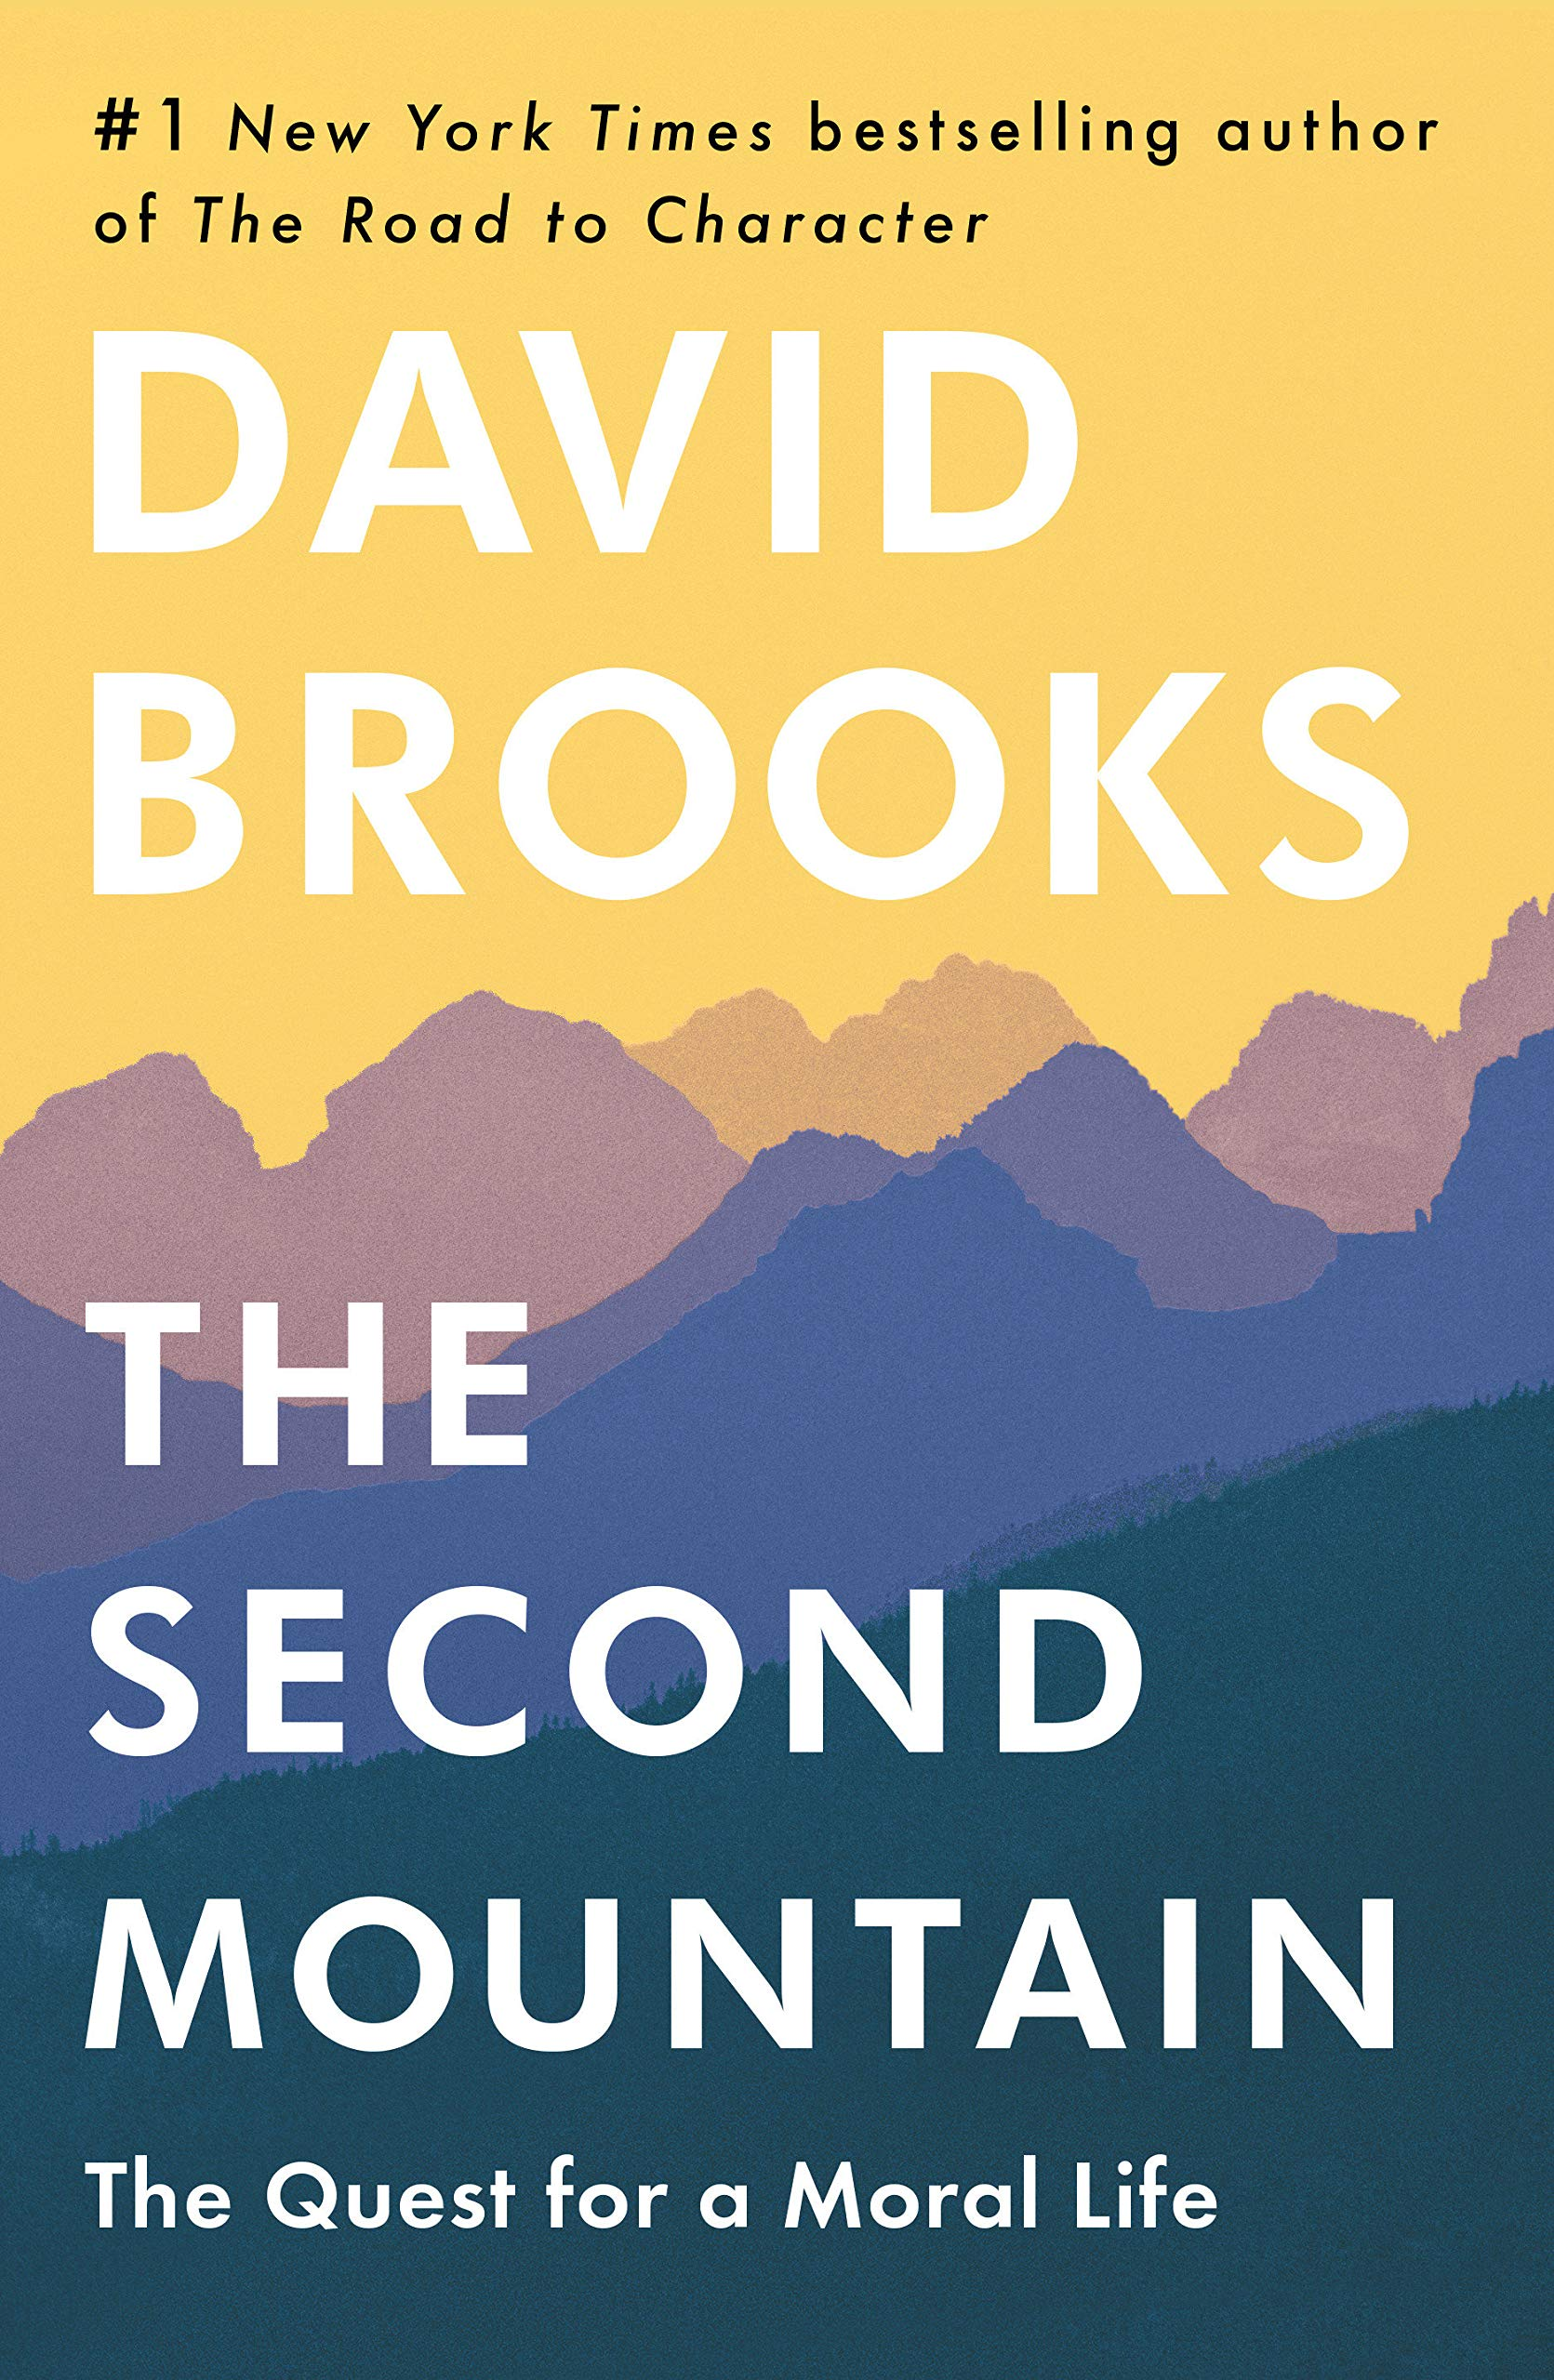 David Brooks is a well-known columnist for the  New York Times  and many other publications of note. Along with Mark Shields, Brooks makes weekly appearance on the PBS NewsHour to offer analysis of breaking political news. He is the bestselling author of  The Road to Character (2015),  The Social Animal  (2011),  Bobos in Paradise  (2000), and On Paradise Drive  (2004).  In The Second Mountain,  he tackles the deep question of life's meaning, what it is to live a meaningful life. The fundamental challenge, he believes, is to abandon our abiding desire to see work, achievement, and wealth as the prizes that will give us what we want. Rather, according to Brooks, we need to pursue a higher calling: what the author describes as the moral life. Chapters in this book explore the meaning of vocation, marriage and family, philosophy and faith, and community.